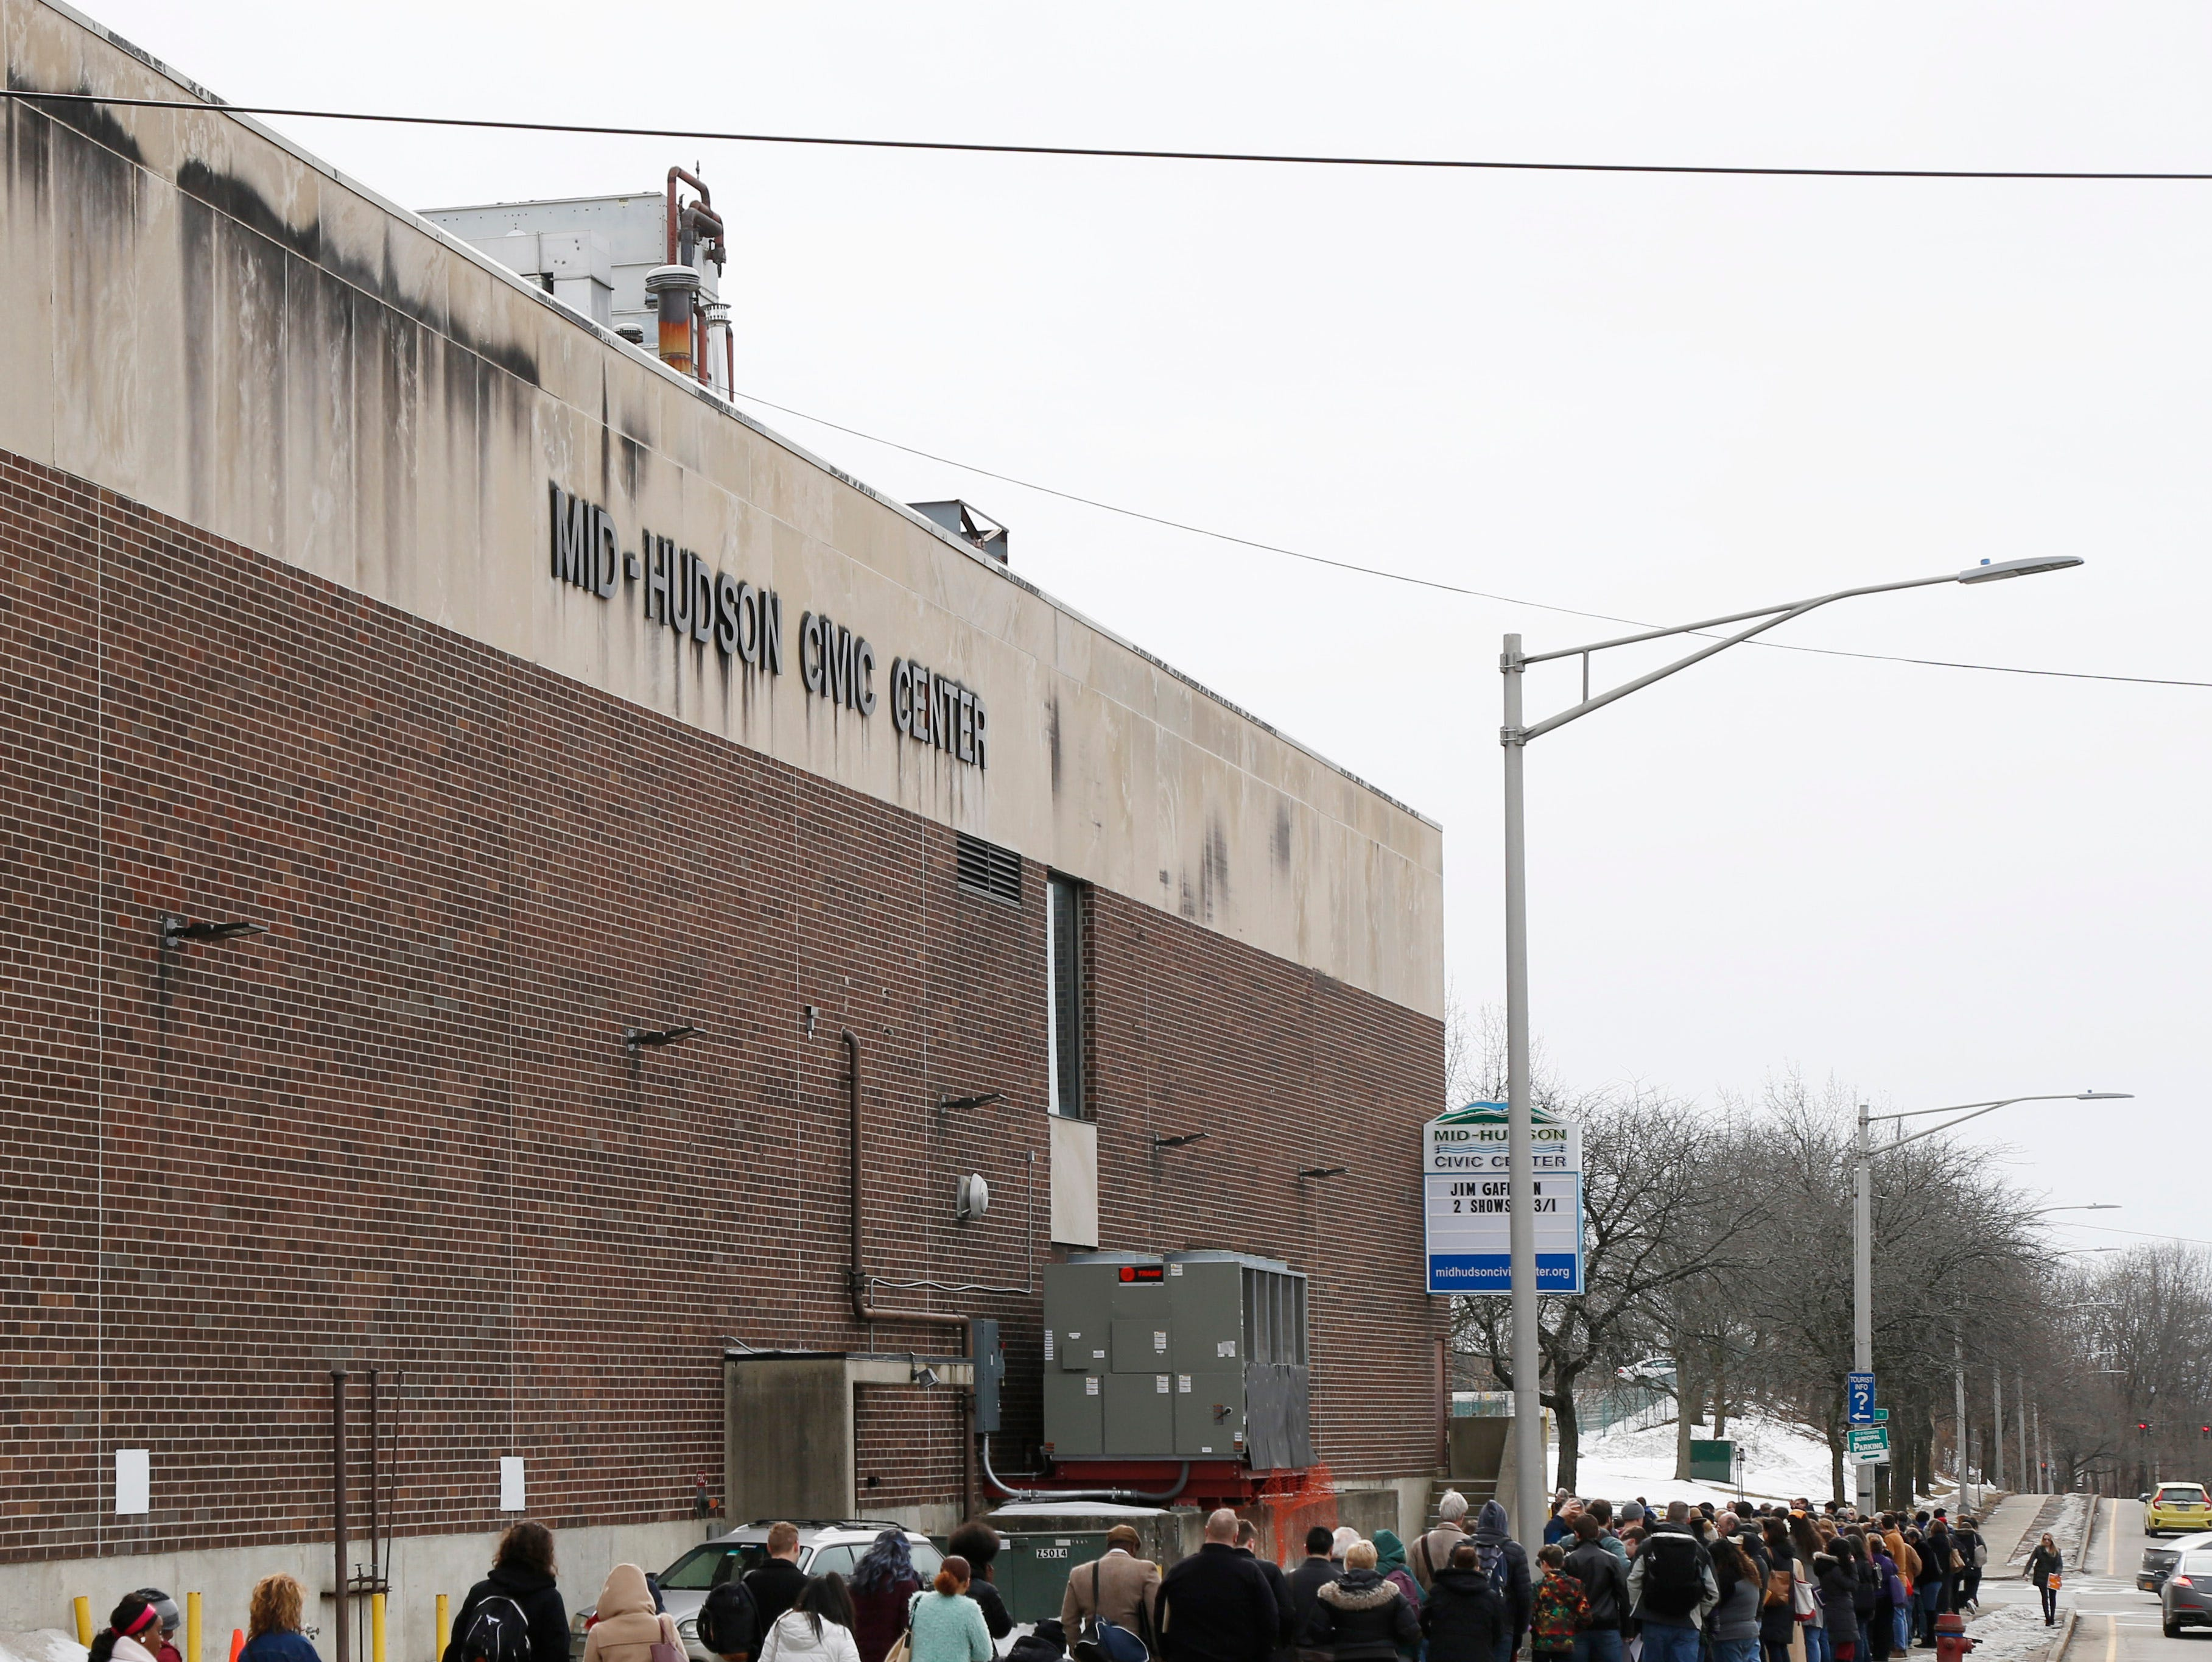 """A long line of candidates wrapping around the Majed J. Nesheiwat Convention Center for Saturday's open casting call for an HBO series staring Mark Ruffalo, called """"I Know This Much is True"""" in the City of Poughkeepsie on Feb 23, 2019."""